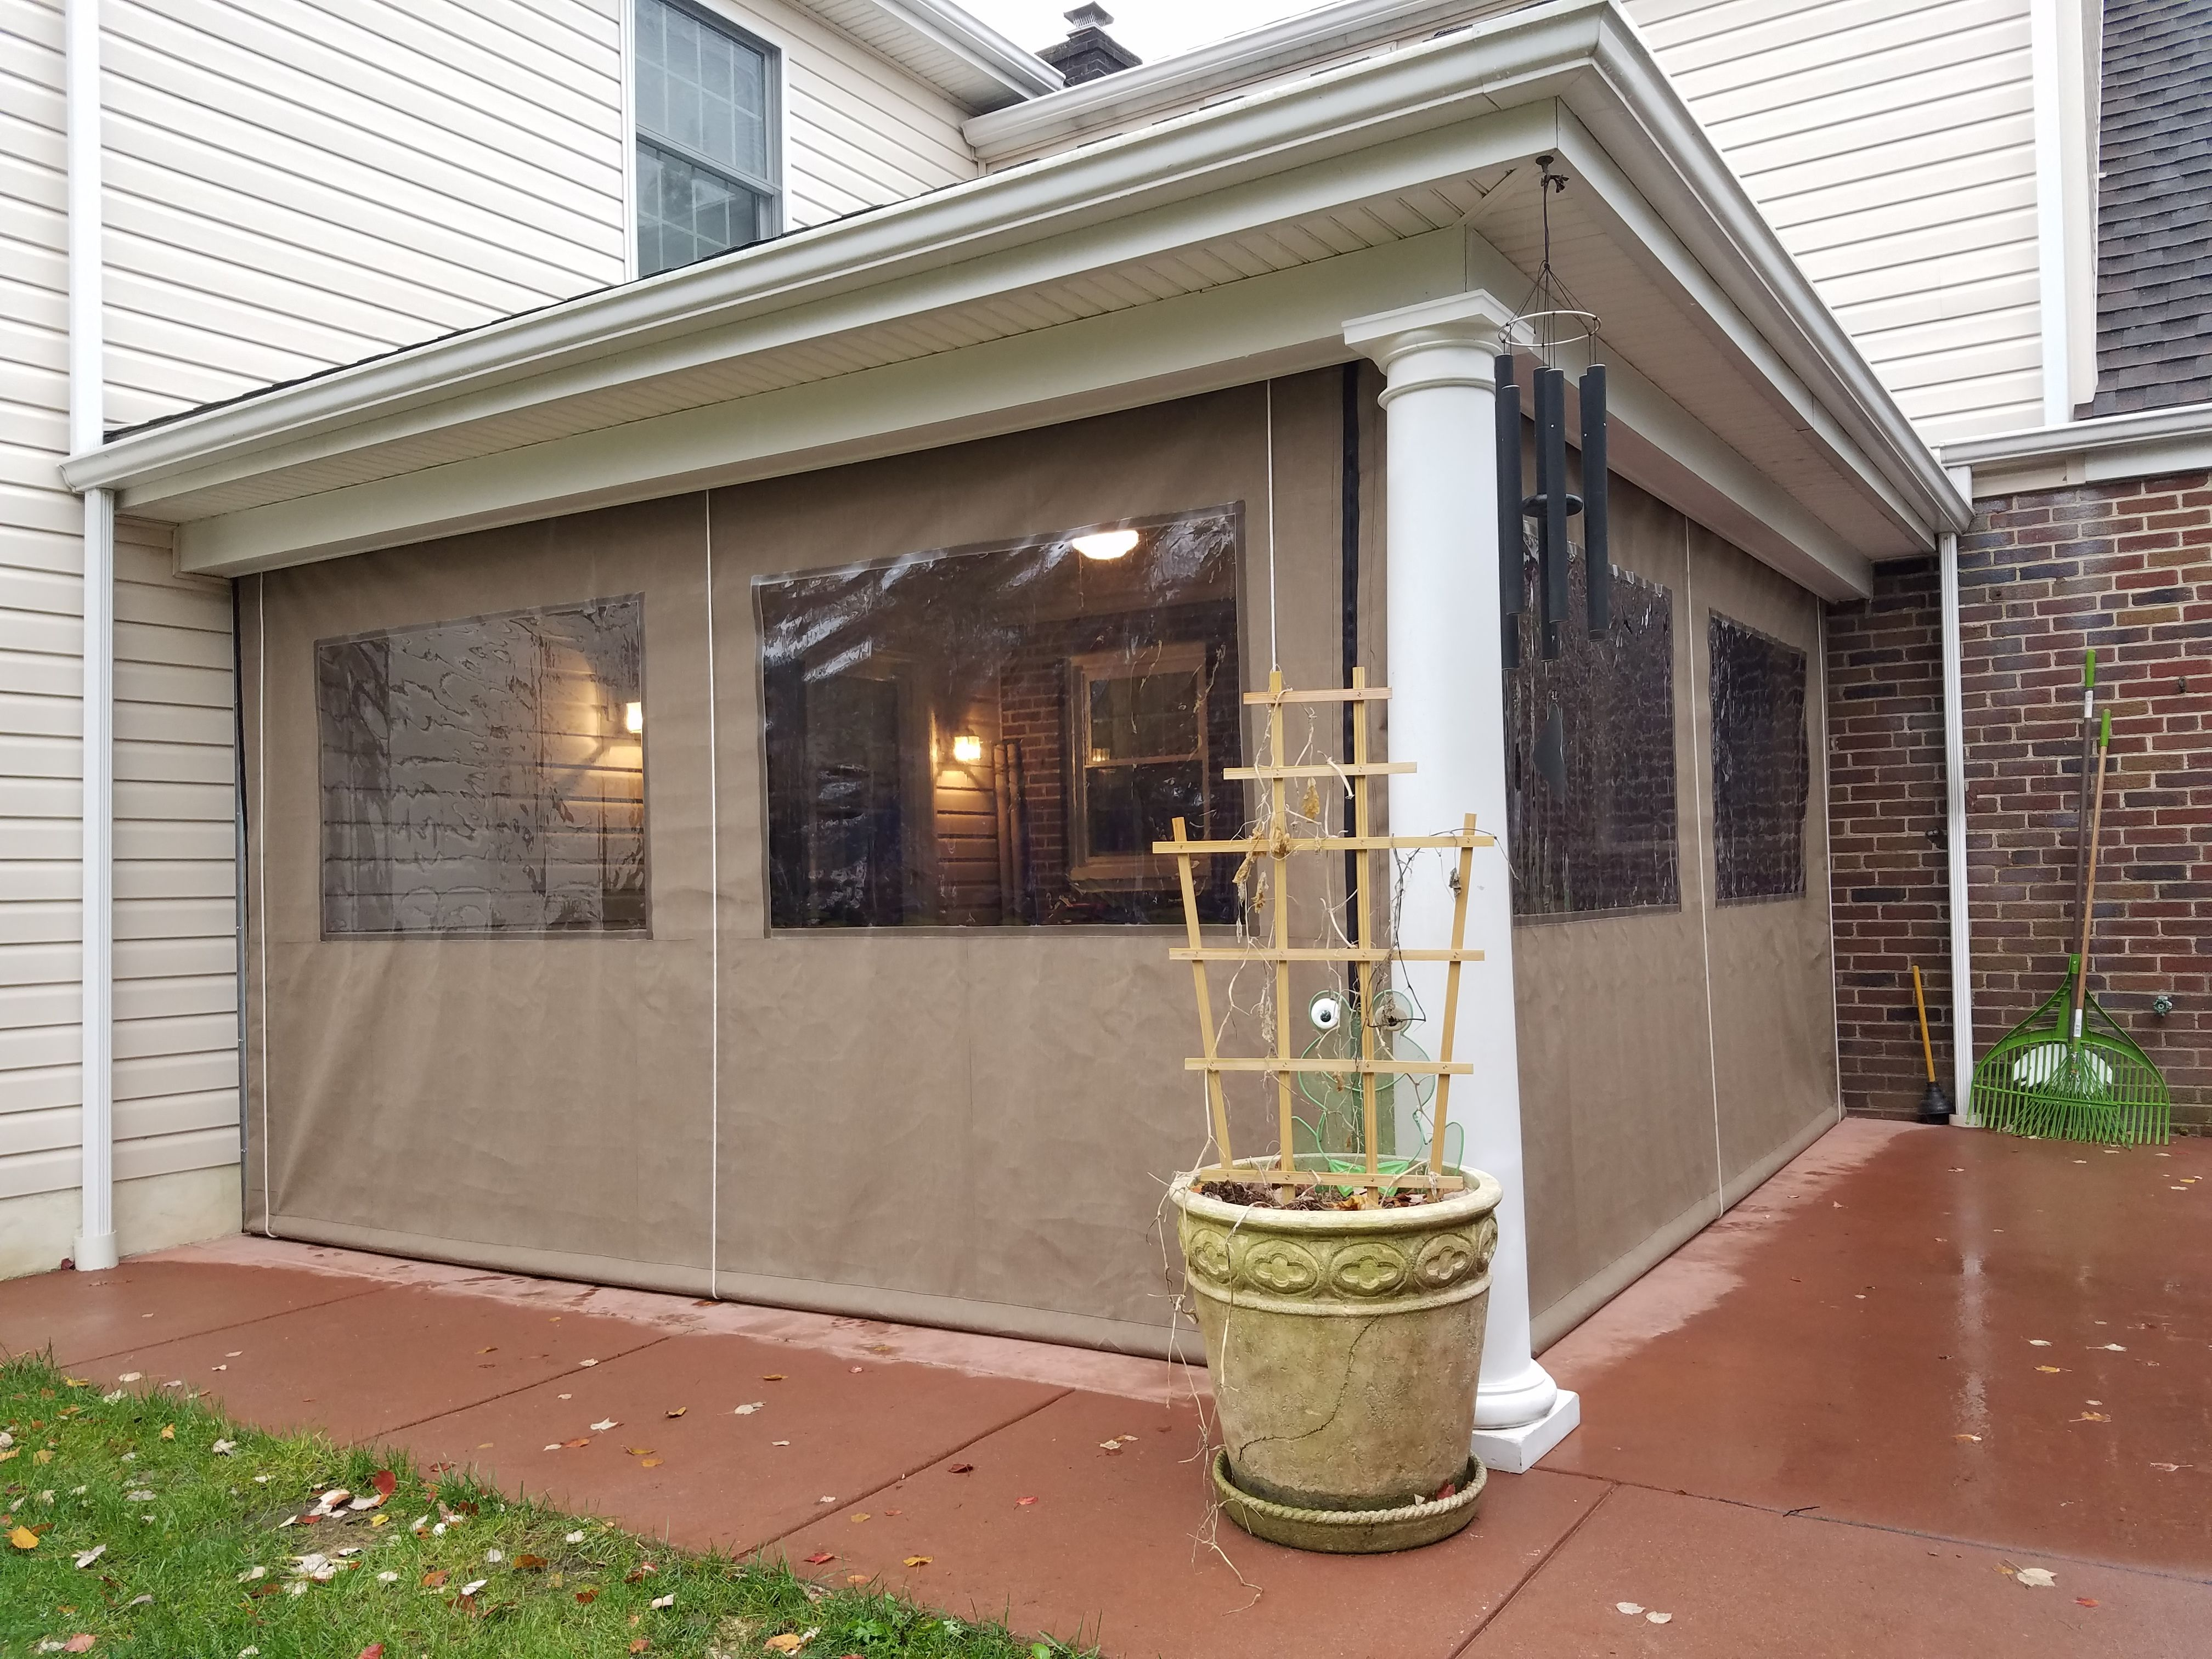 Vinyl patio curtains - Enjoy Your Porch Year Round By Installing Clear Vinyl Drop Curtains The Curtains Can Store In The Up Position When Not In Use